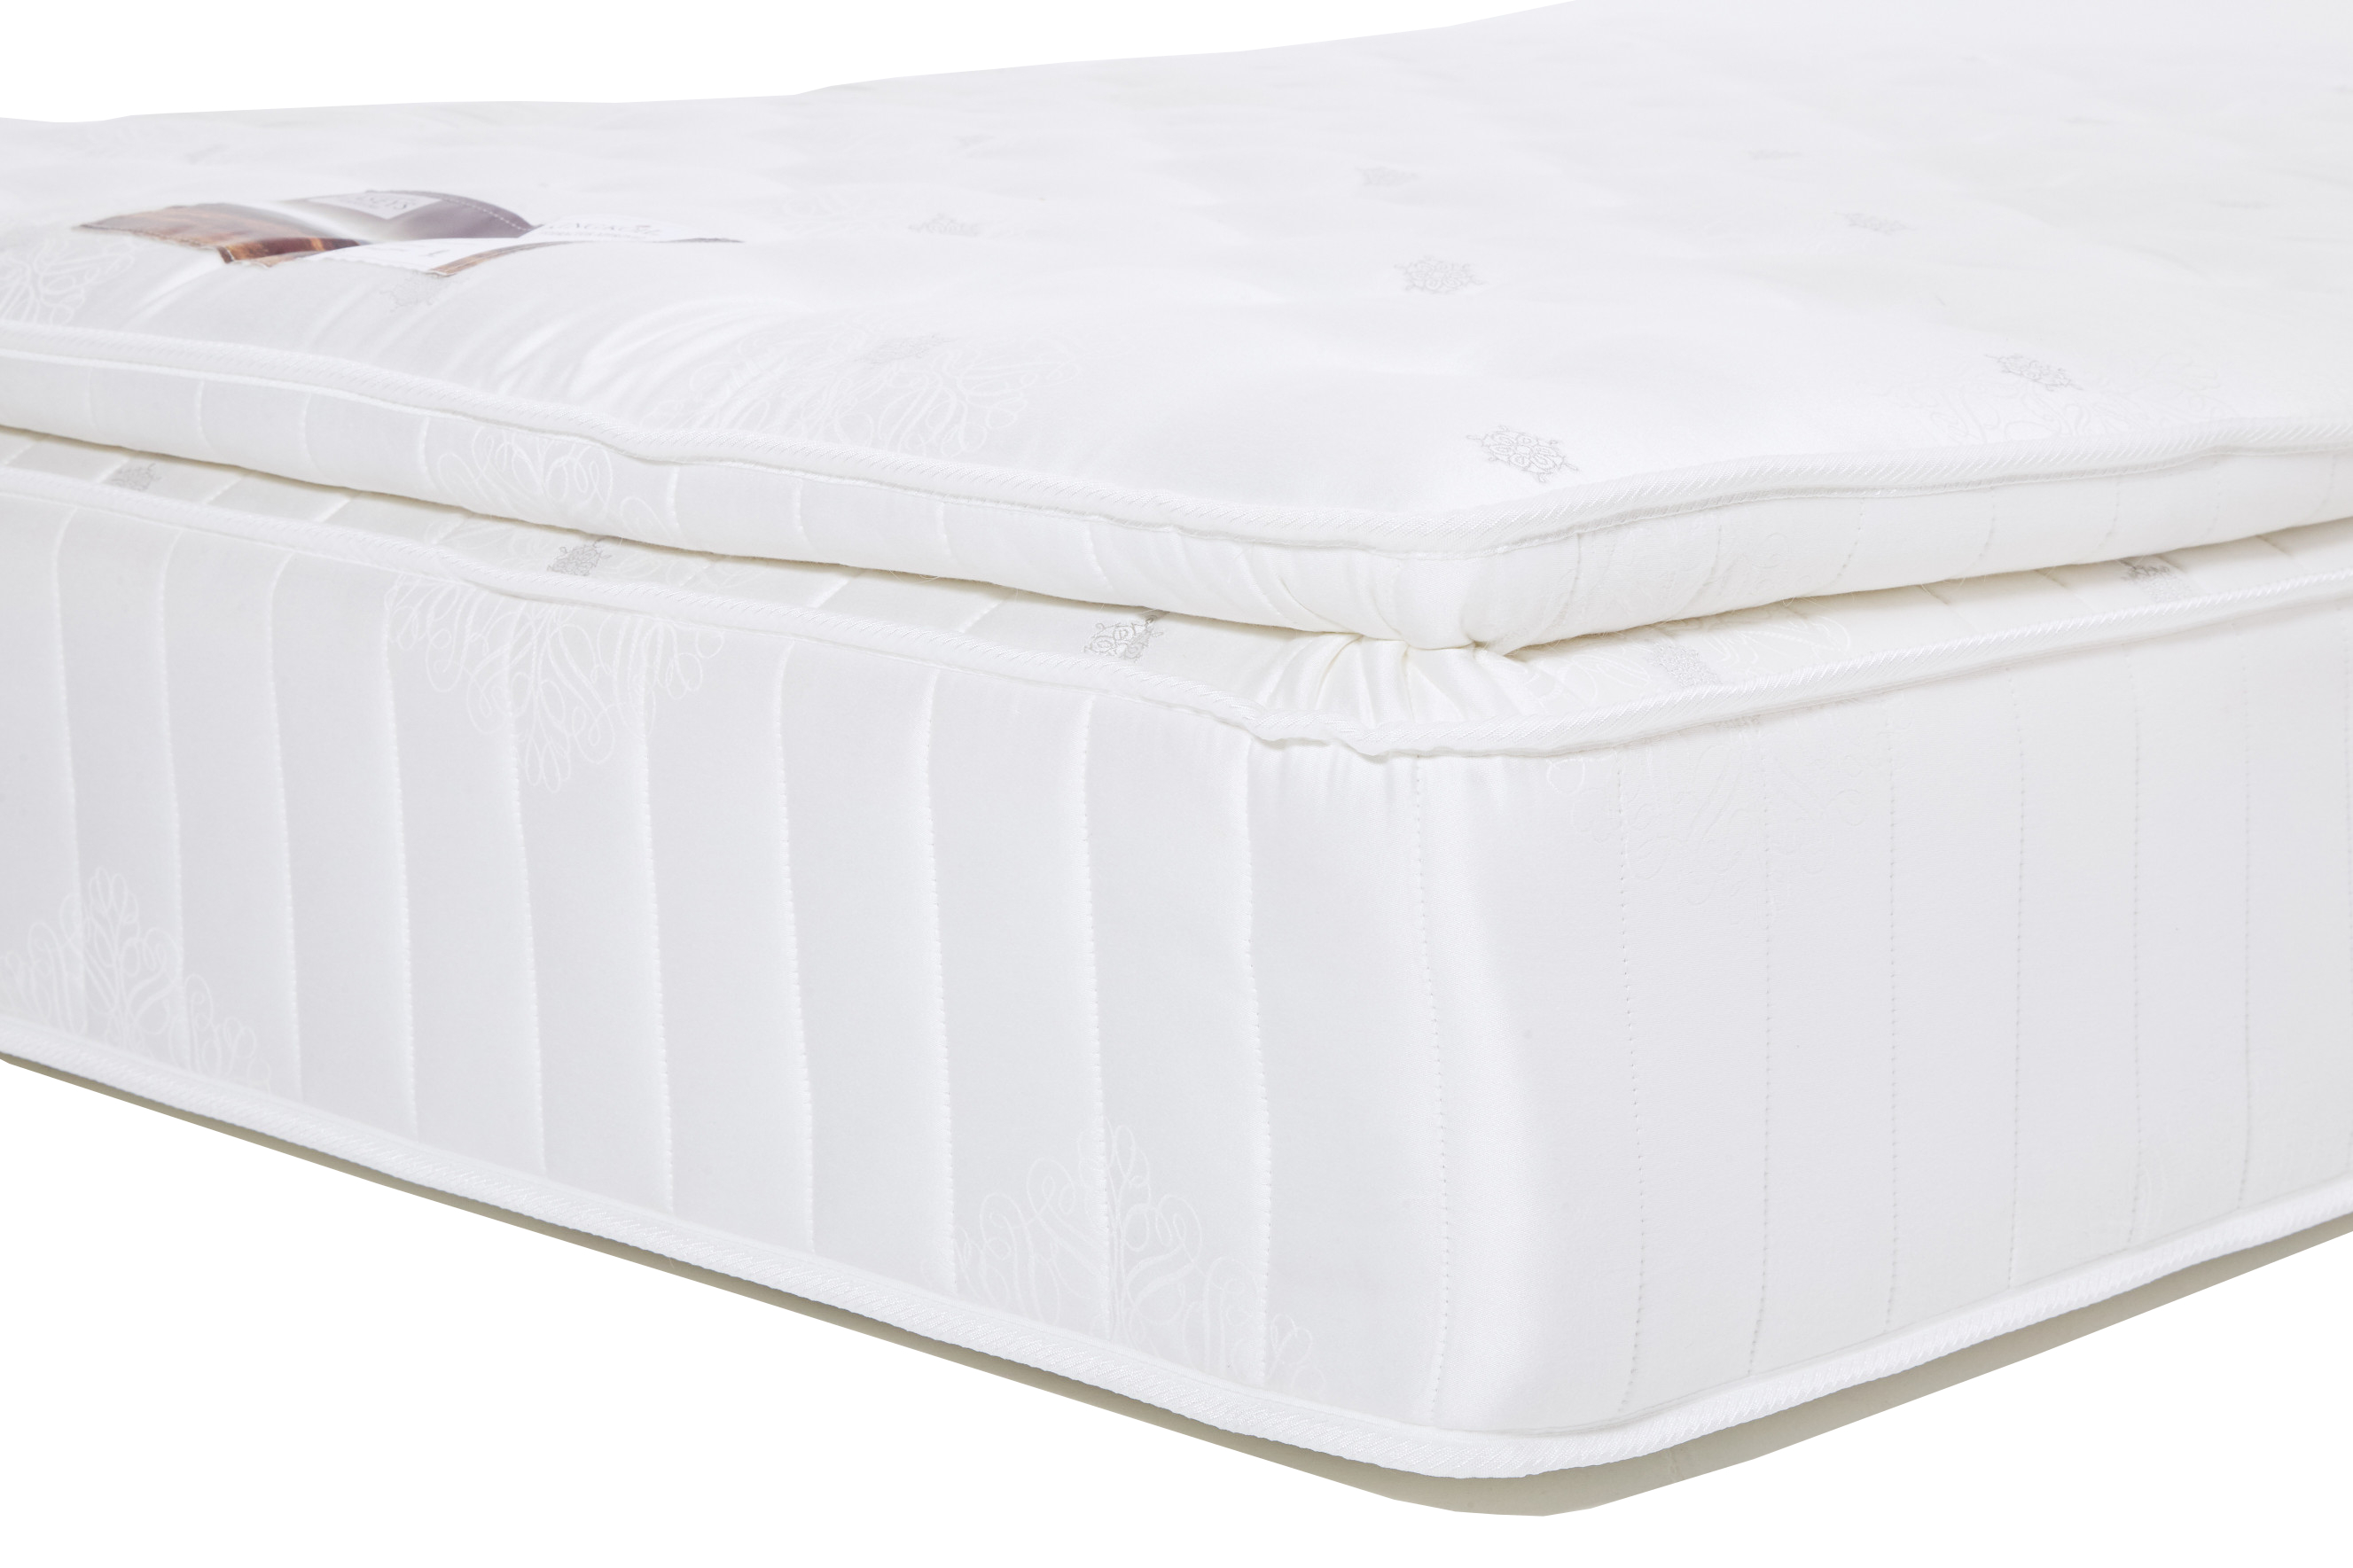 King Koil Caseys 2000 Natural Comfort Mattress